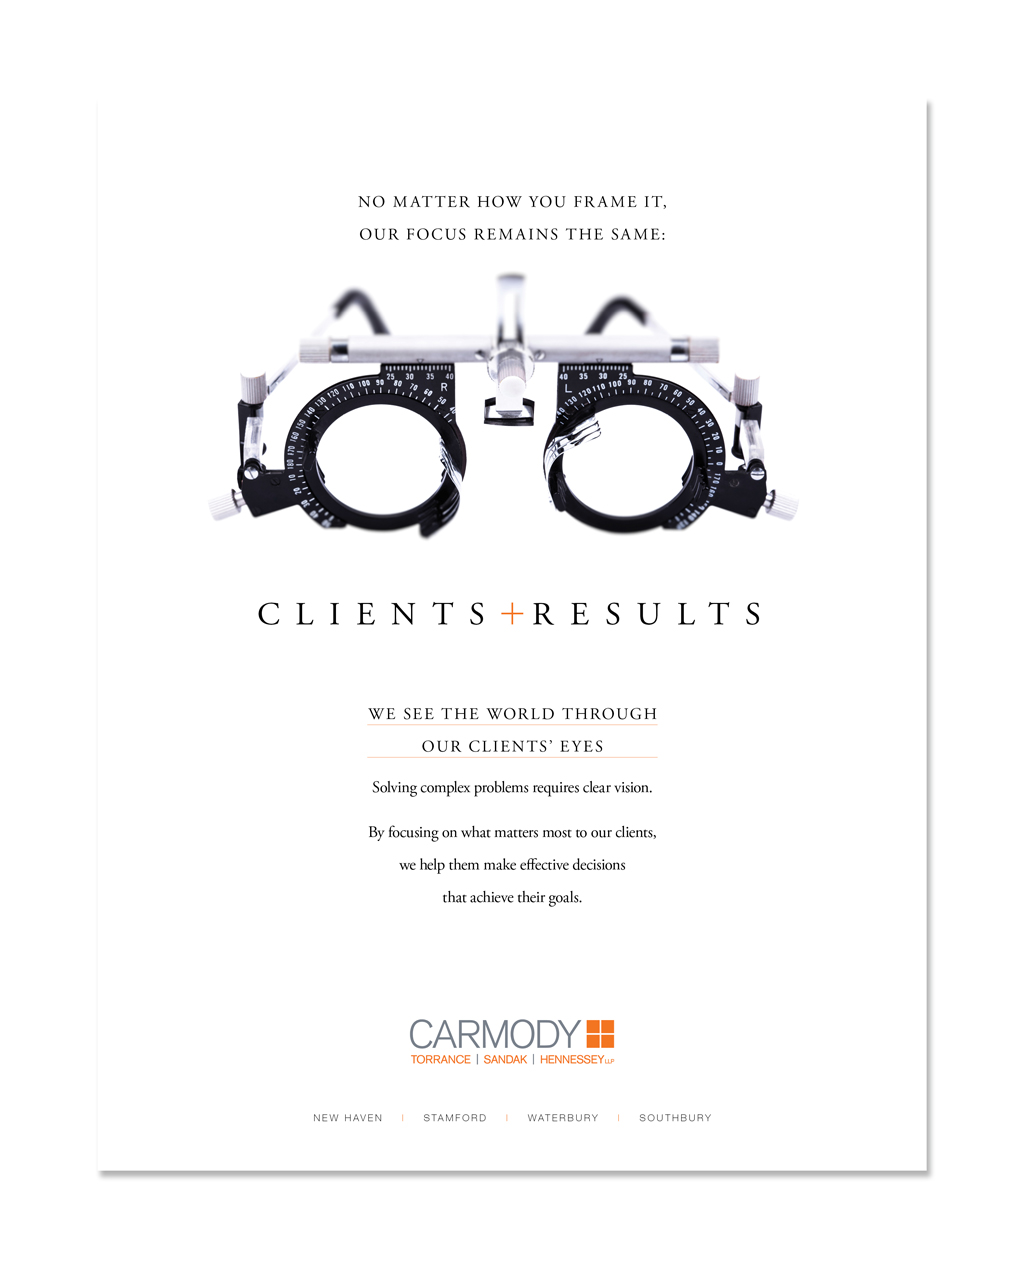 CLIENTS + RESULTS   Print Ad: Carmody Torrance Sandak & Hennessey LLP